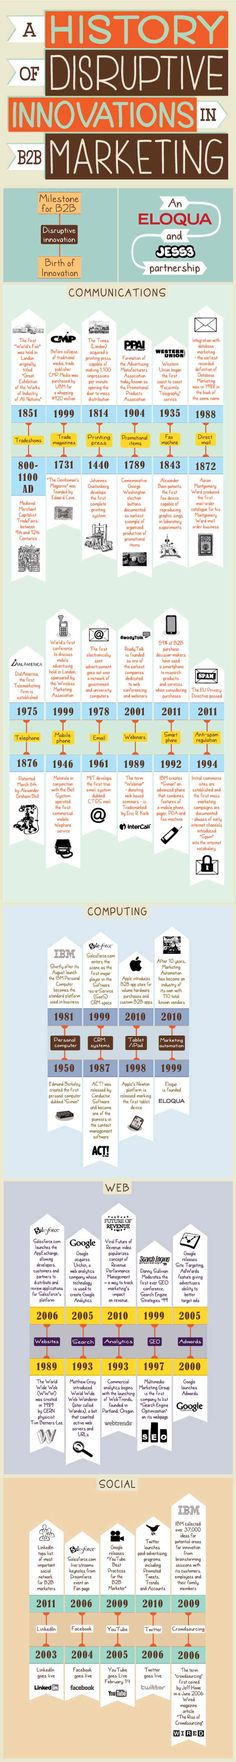 A History Of Disruptive B2B Marketing Innovations [INFOGRAPHIC] - AllTwitter